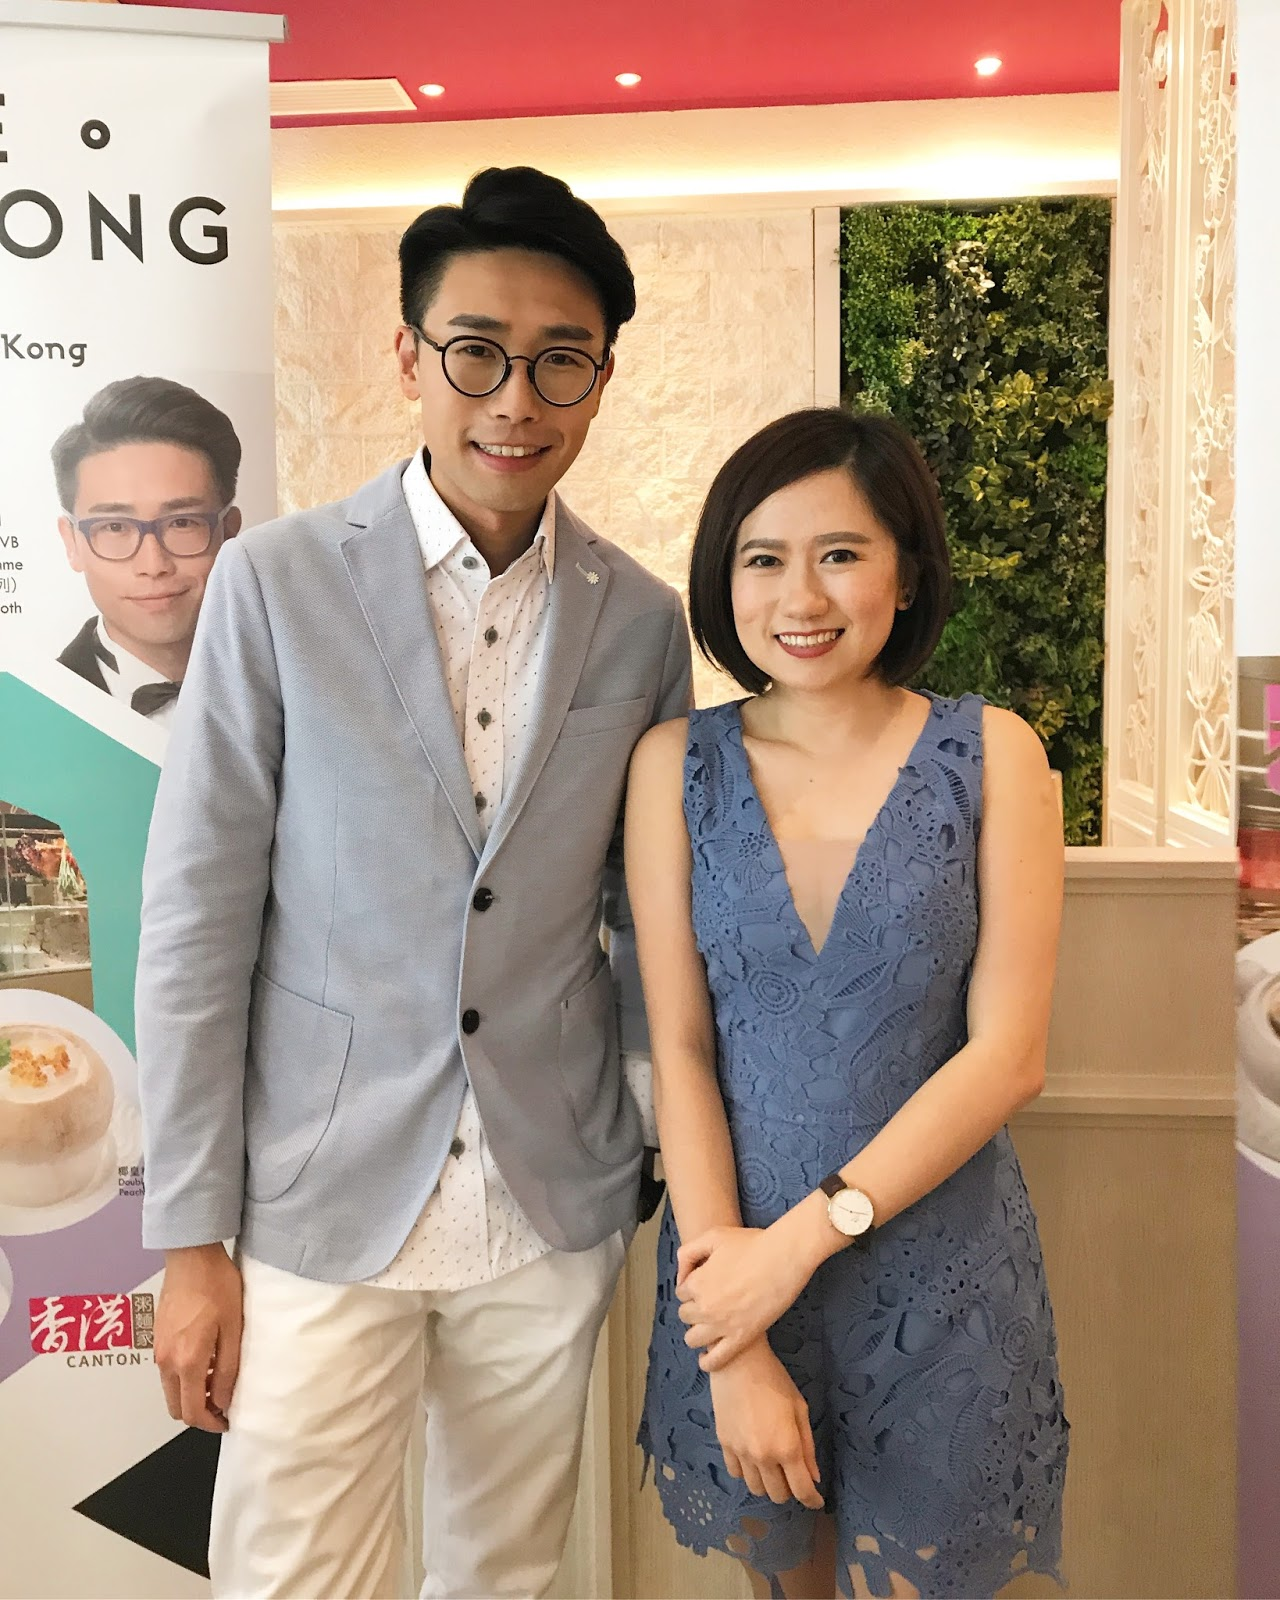 In Style ● Hong Kong ~ A Taste and Feel of Hong Kong with Celebrity Luk Ho Ming @ Canton-i Sunway Pyramid